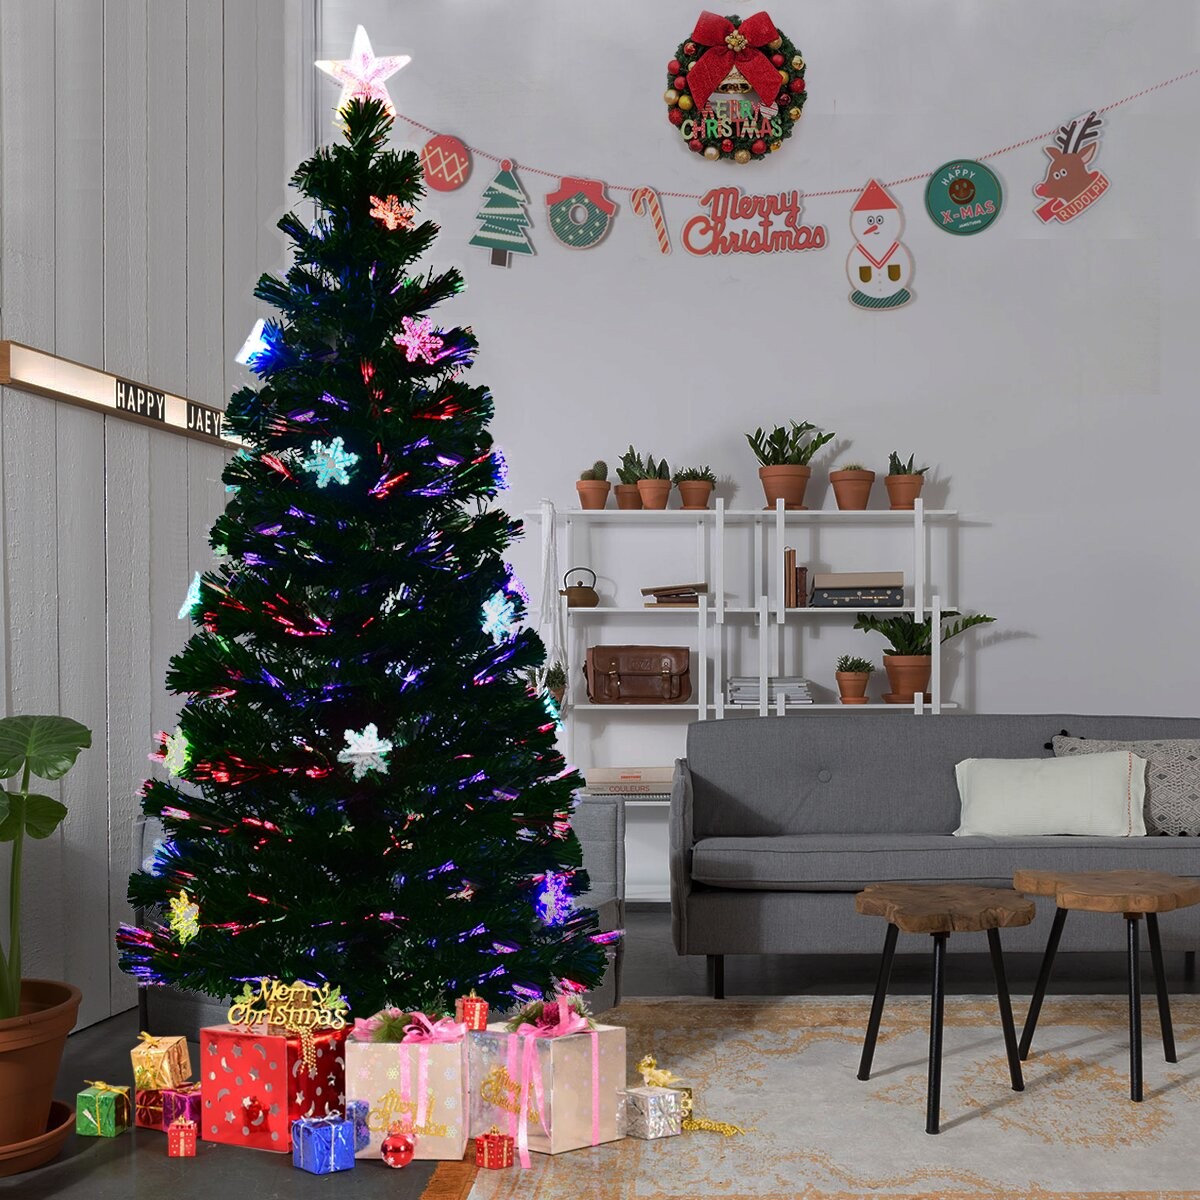 Gymax Fiber Optic 6' PVC Artificial Christmas Tree LED Lights Metal Stand